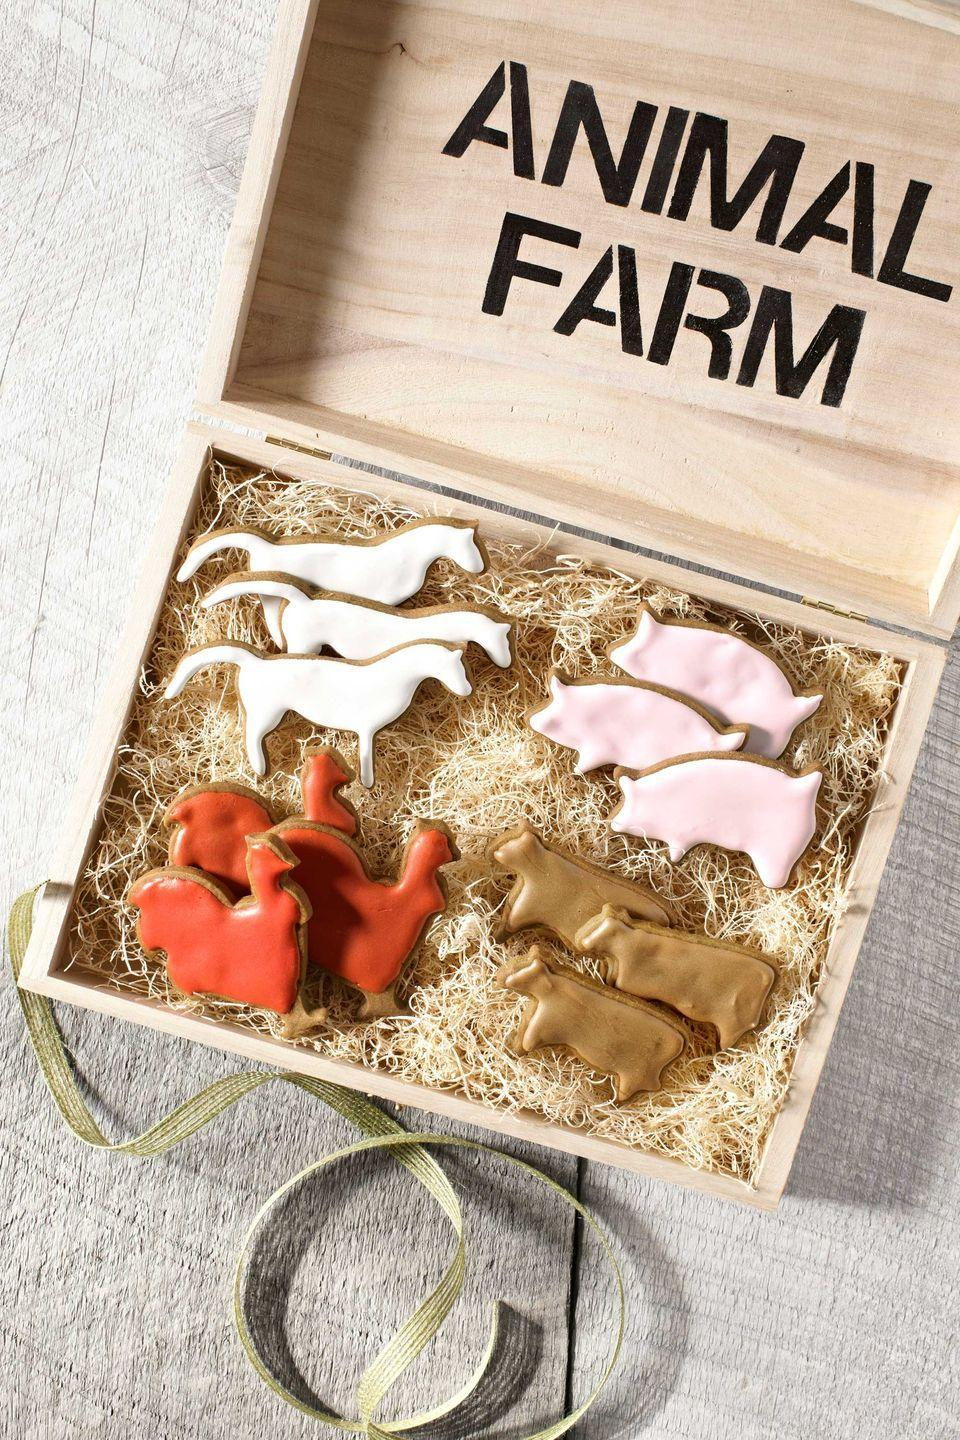 """<p>Traditional gingerbread takes a walk on the wild side, via critter cookie cutters. Corral the whole stable in a hand-stenciled box filled with """"hay.""""</p><p><strong><a href=""""https://www.countryliving.com/food-drinks/recipes/a4231/gingerbread-animals-recipe-clv1212/"""" rel=""""nofollow noopener"""" target=""""_blank"""" data-ylk=""""slk:Get the recipe"""" class=""""link rapid-noclick-resp"""">Get the recipe</a>.</strong></p><p><a class=""""link rapid-noclick-resp"""" href=""""https://www.amazon.com/Forest-Critters-Cookie-Cutter-Set/dp/B07D3HV3VP/?tag=syn-yahoo-20&ascsubtag=%5Bartid%7C10050.g.647%5Bsrc%7Cyahoo-us"""" rel=""""nofollow noopener"""" target=""""_blank"""" data-ylk=""""slk:SHOP FARM ANIMAL COOKIE CUTTERS"""">SHOP FARM ANIMAL COOKIE CUTTERS</a></p>"""